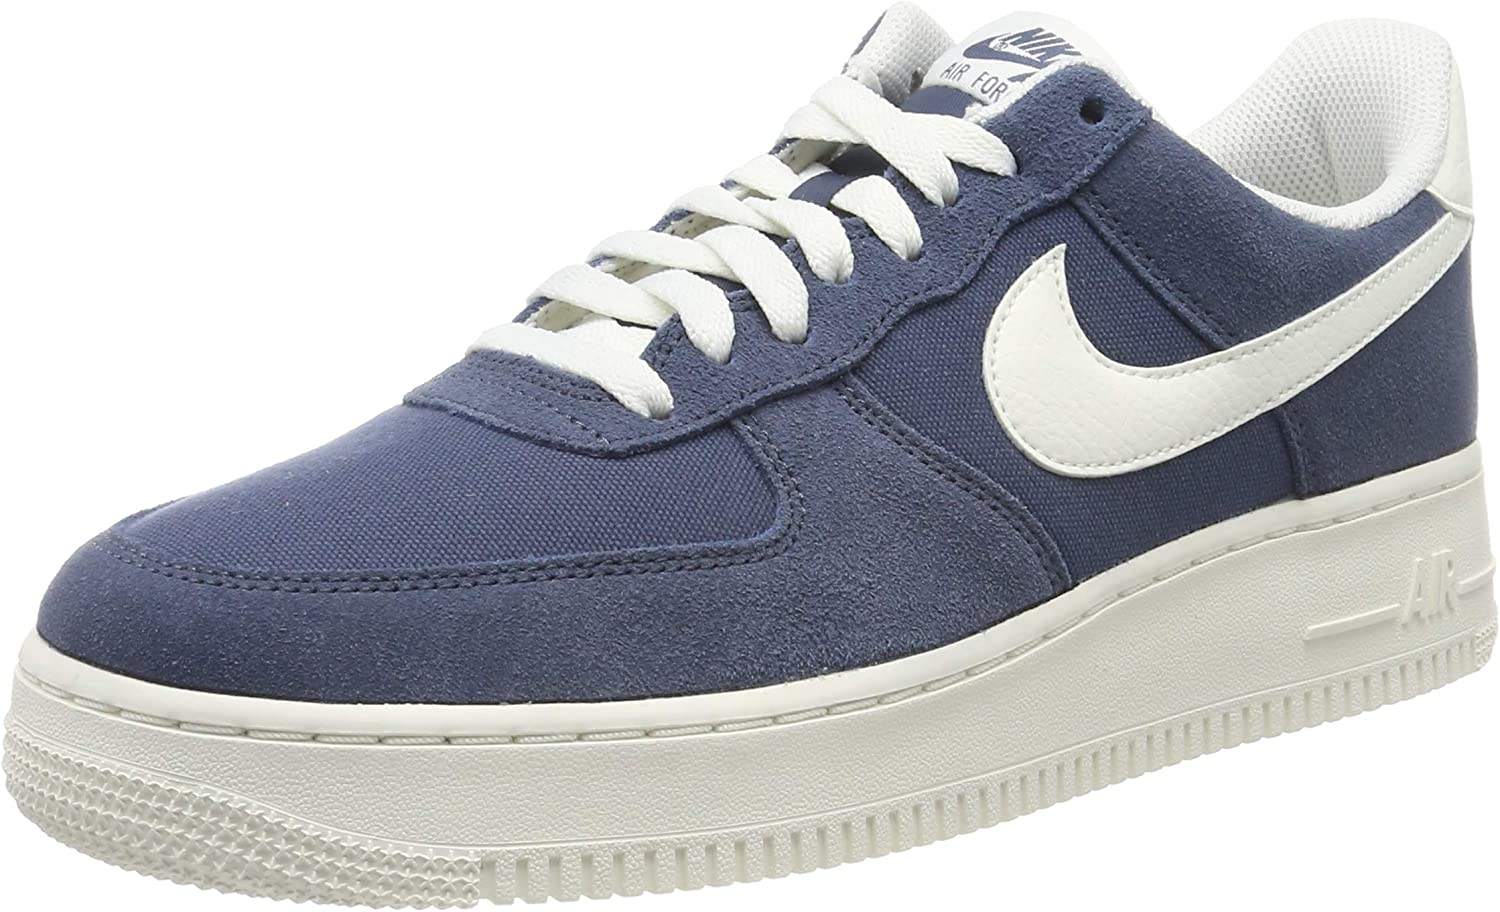 Nike Air Force 1 '07 2 (Suede): Amazon